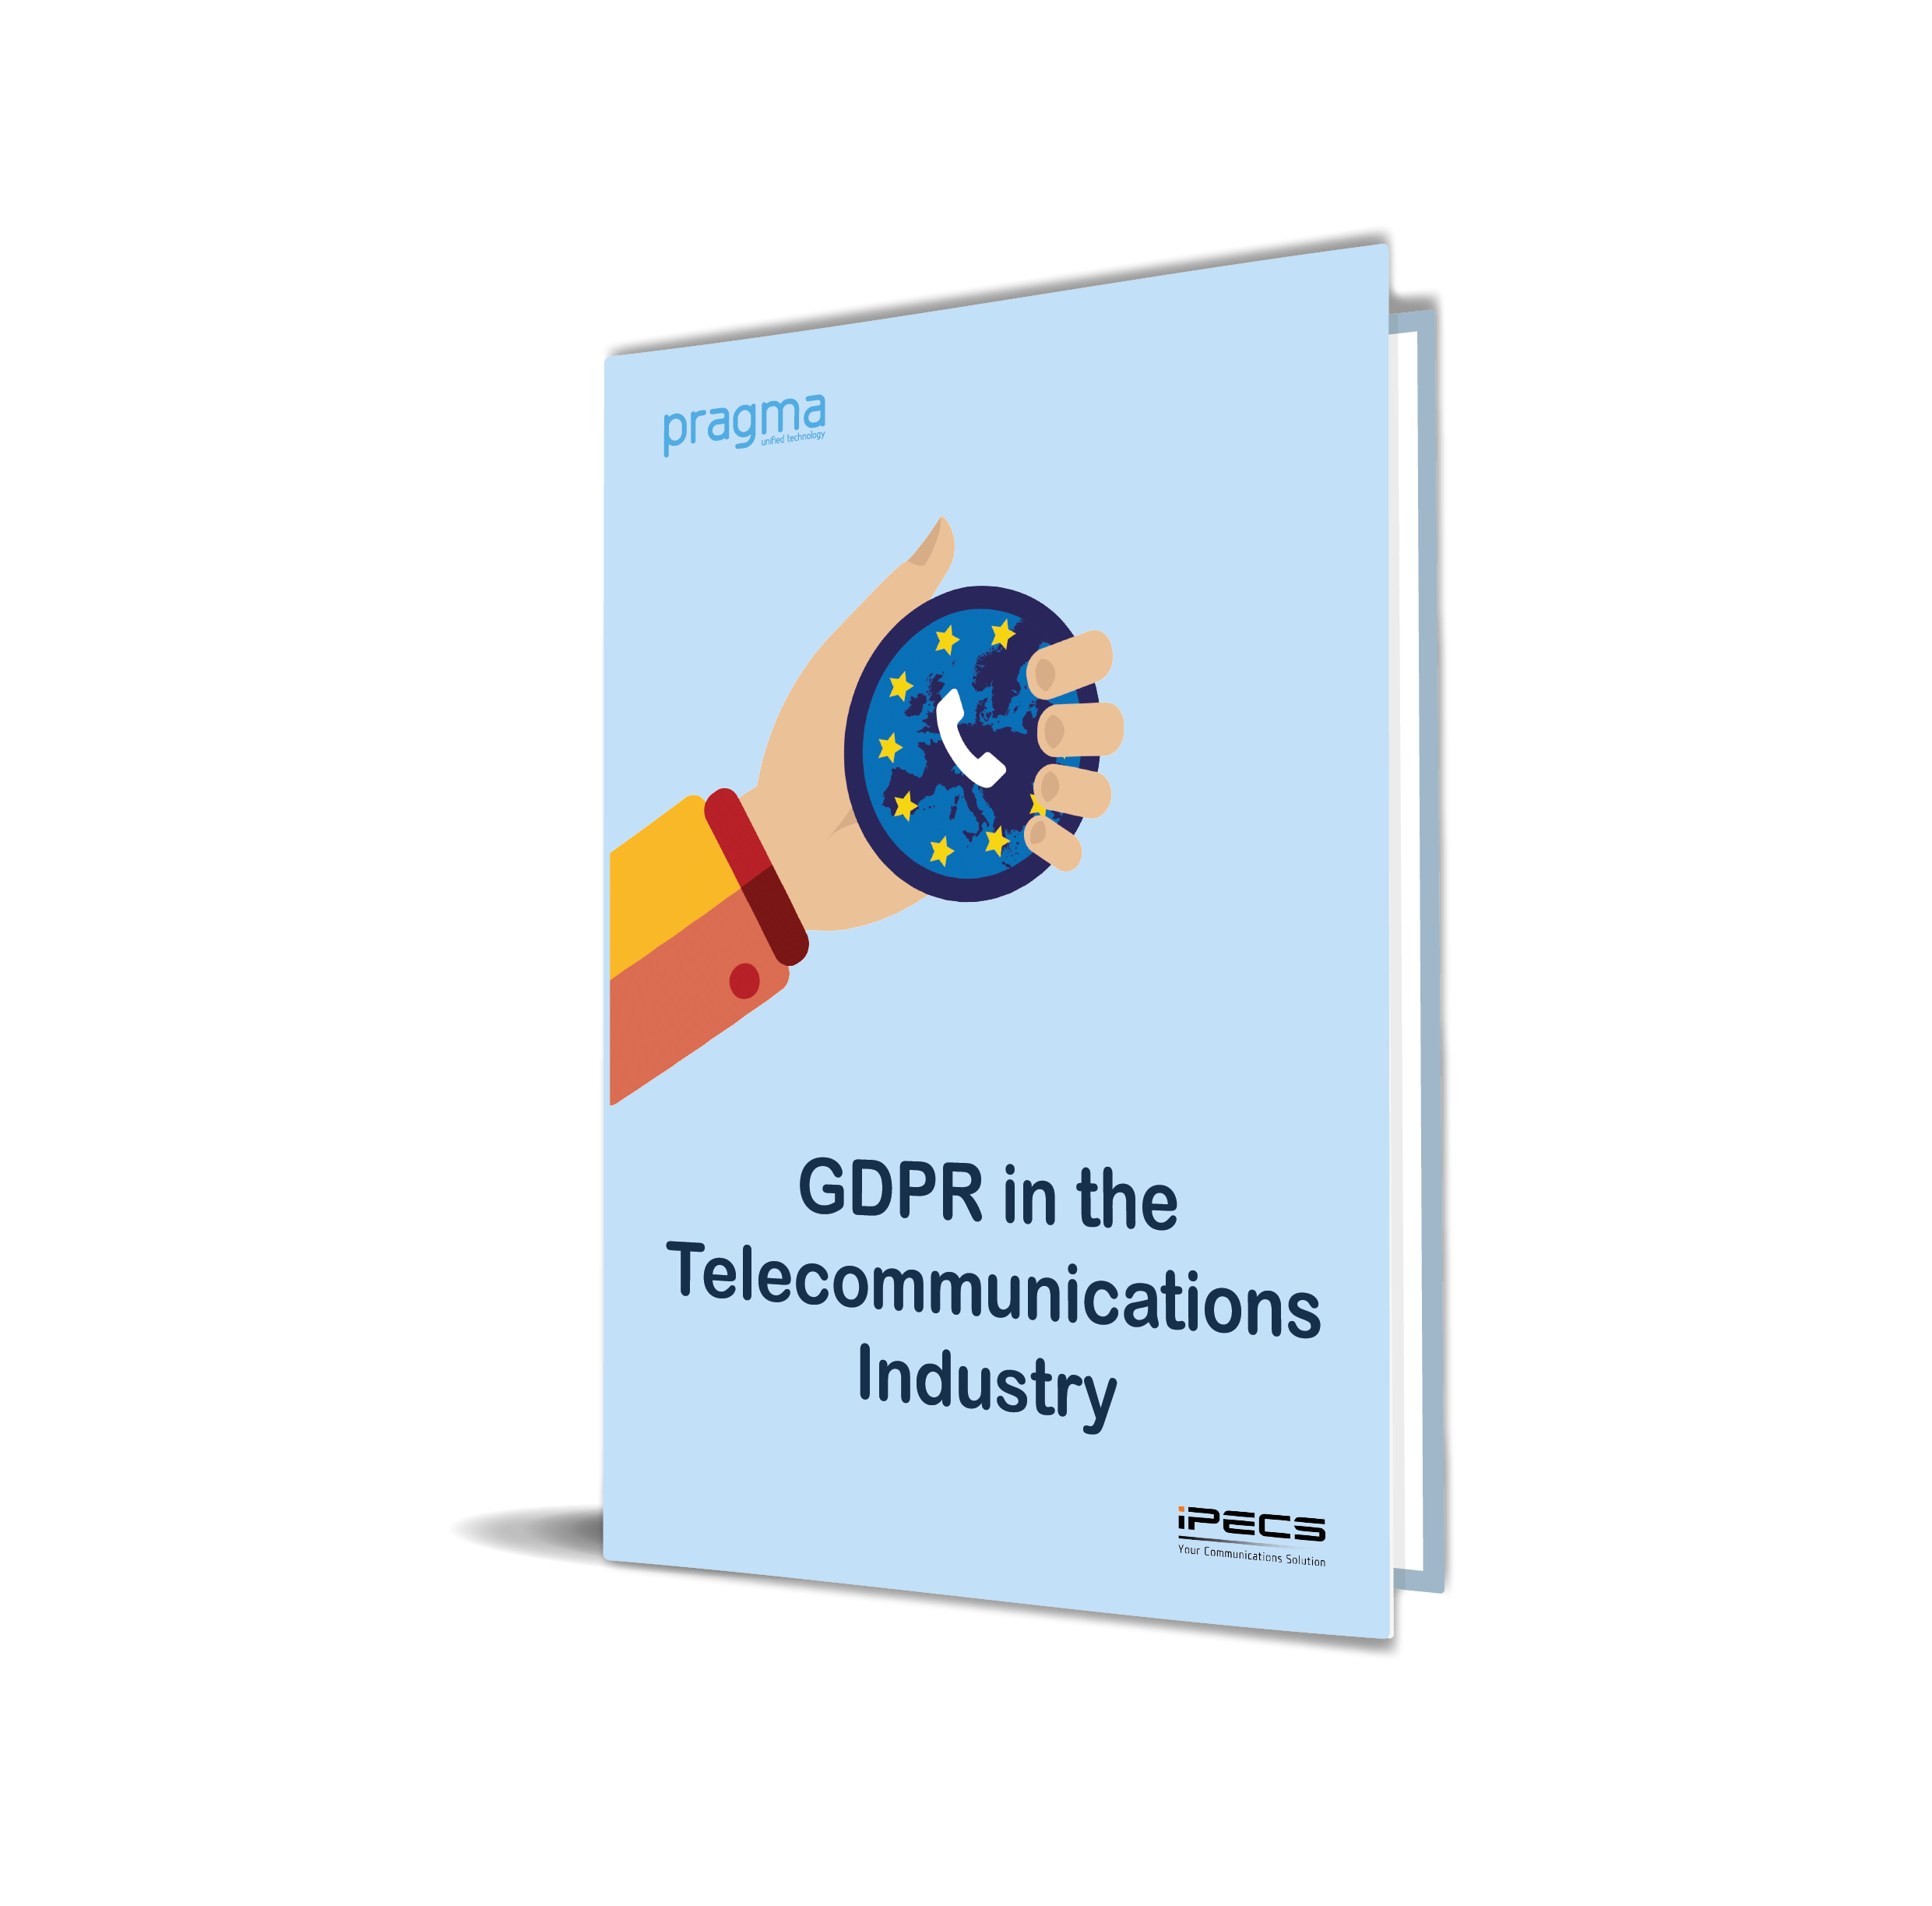 GDPR in the telecommunications industry